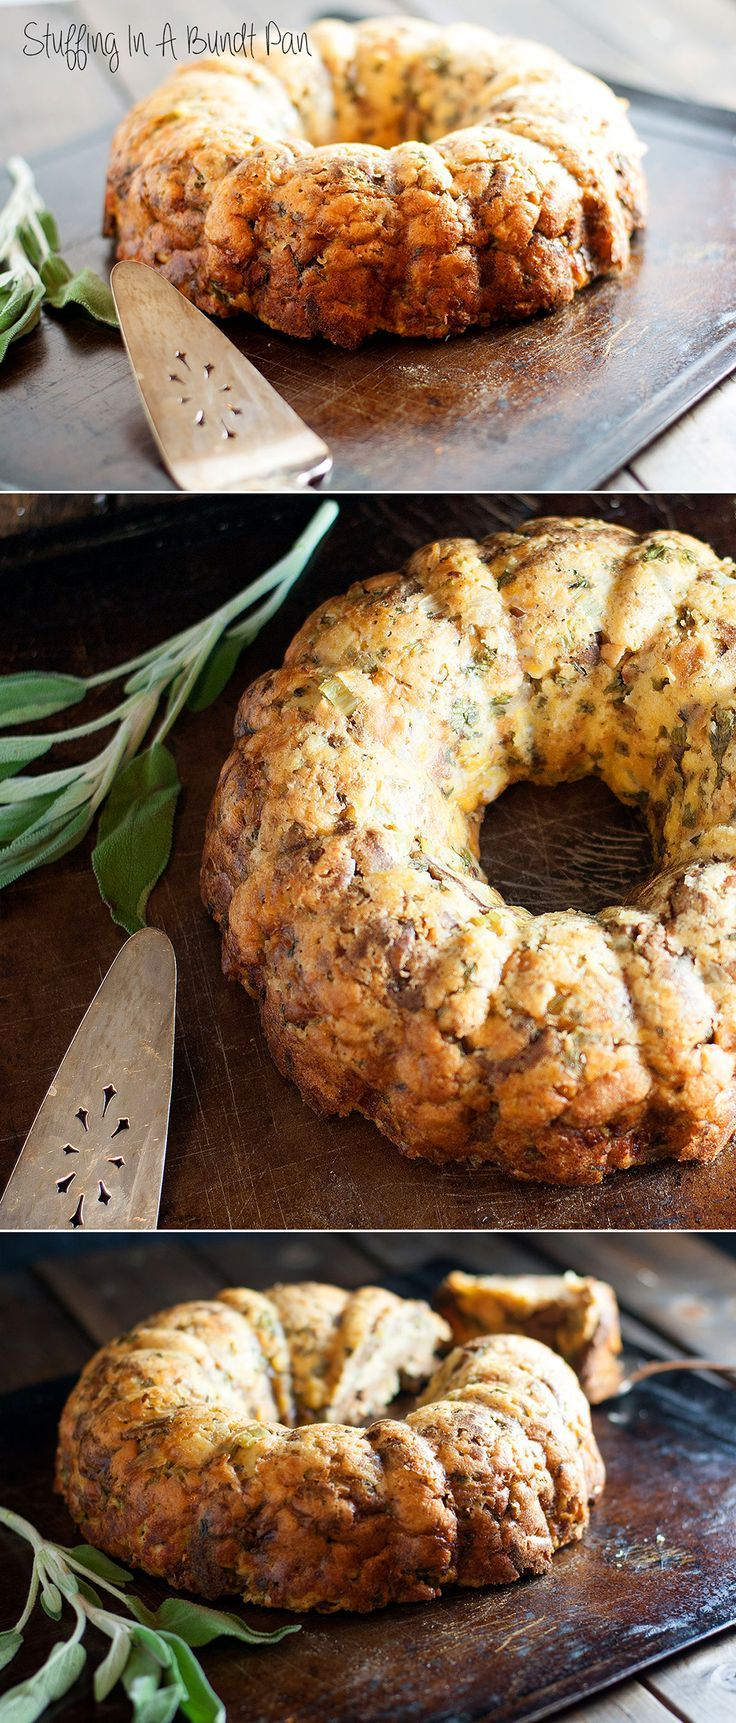 Stuffing In A Bundt Pan - A perfect Thanksgiving show stopper on your dining table!